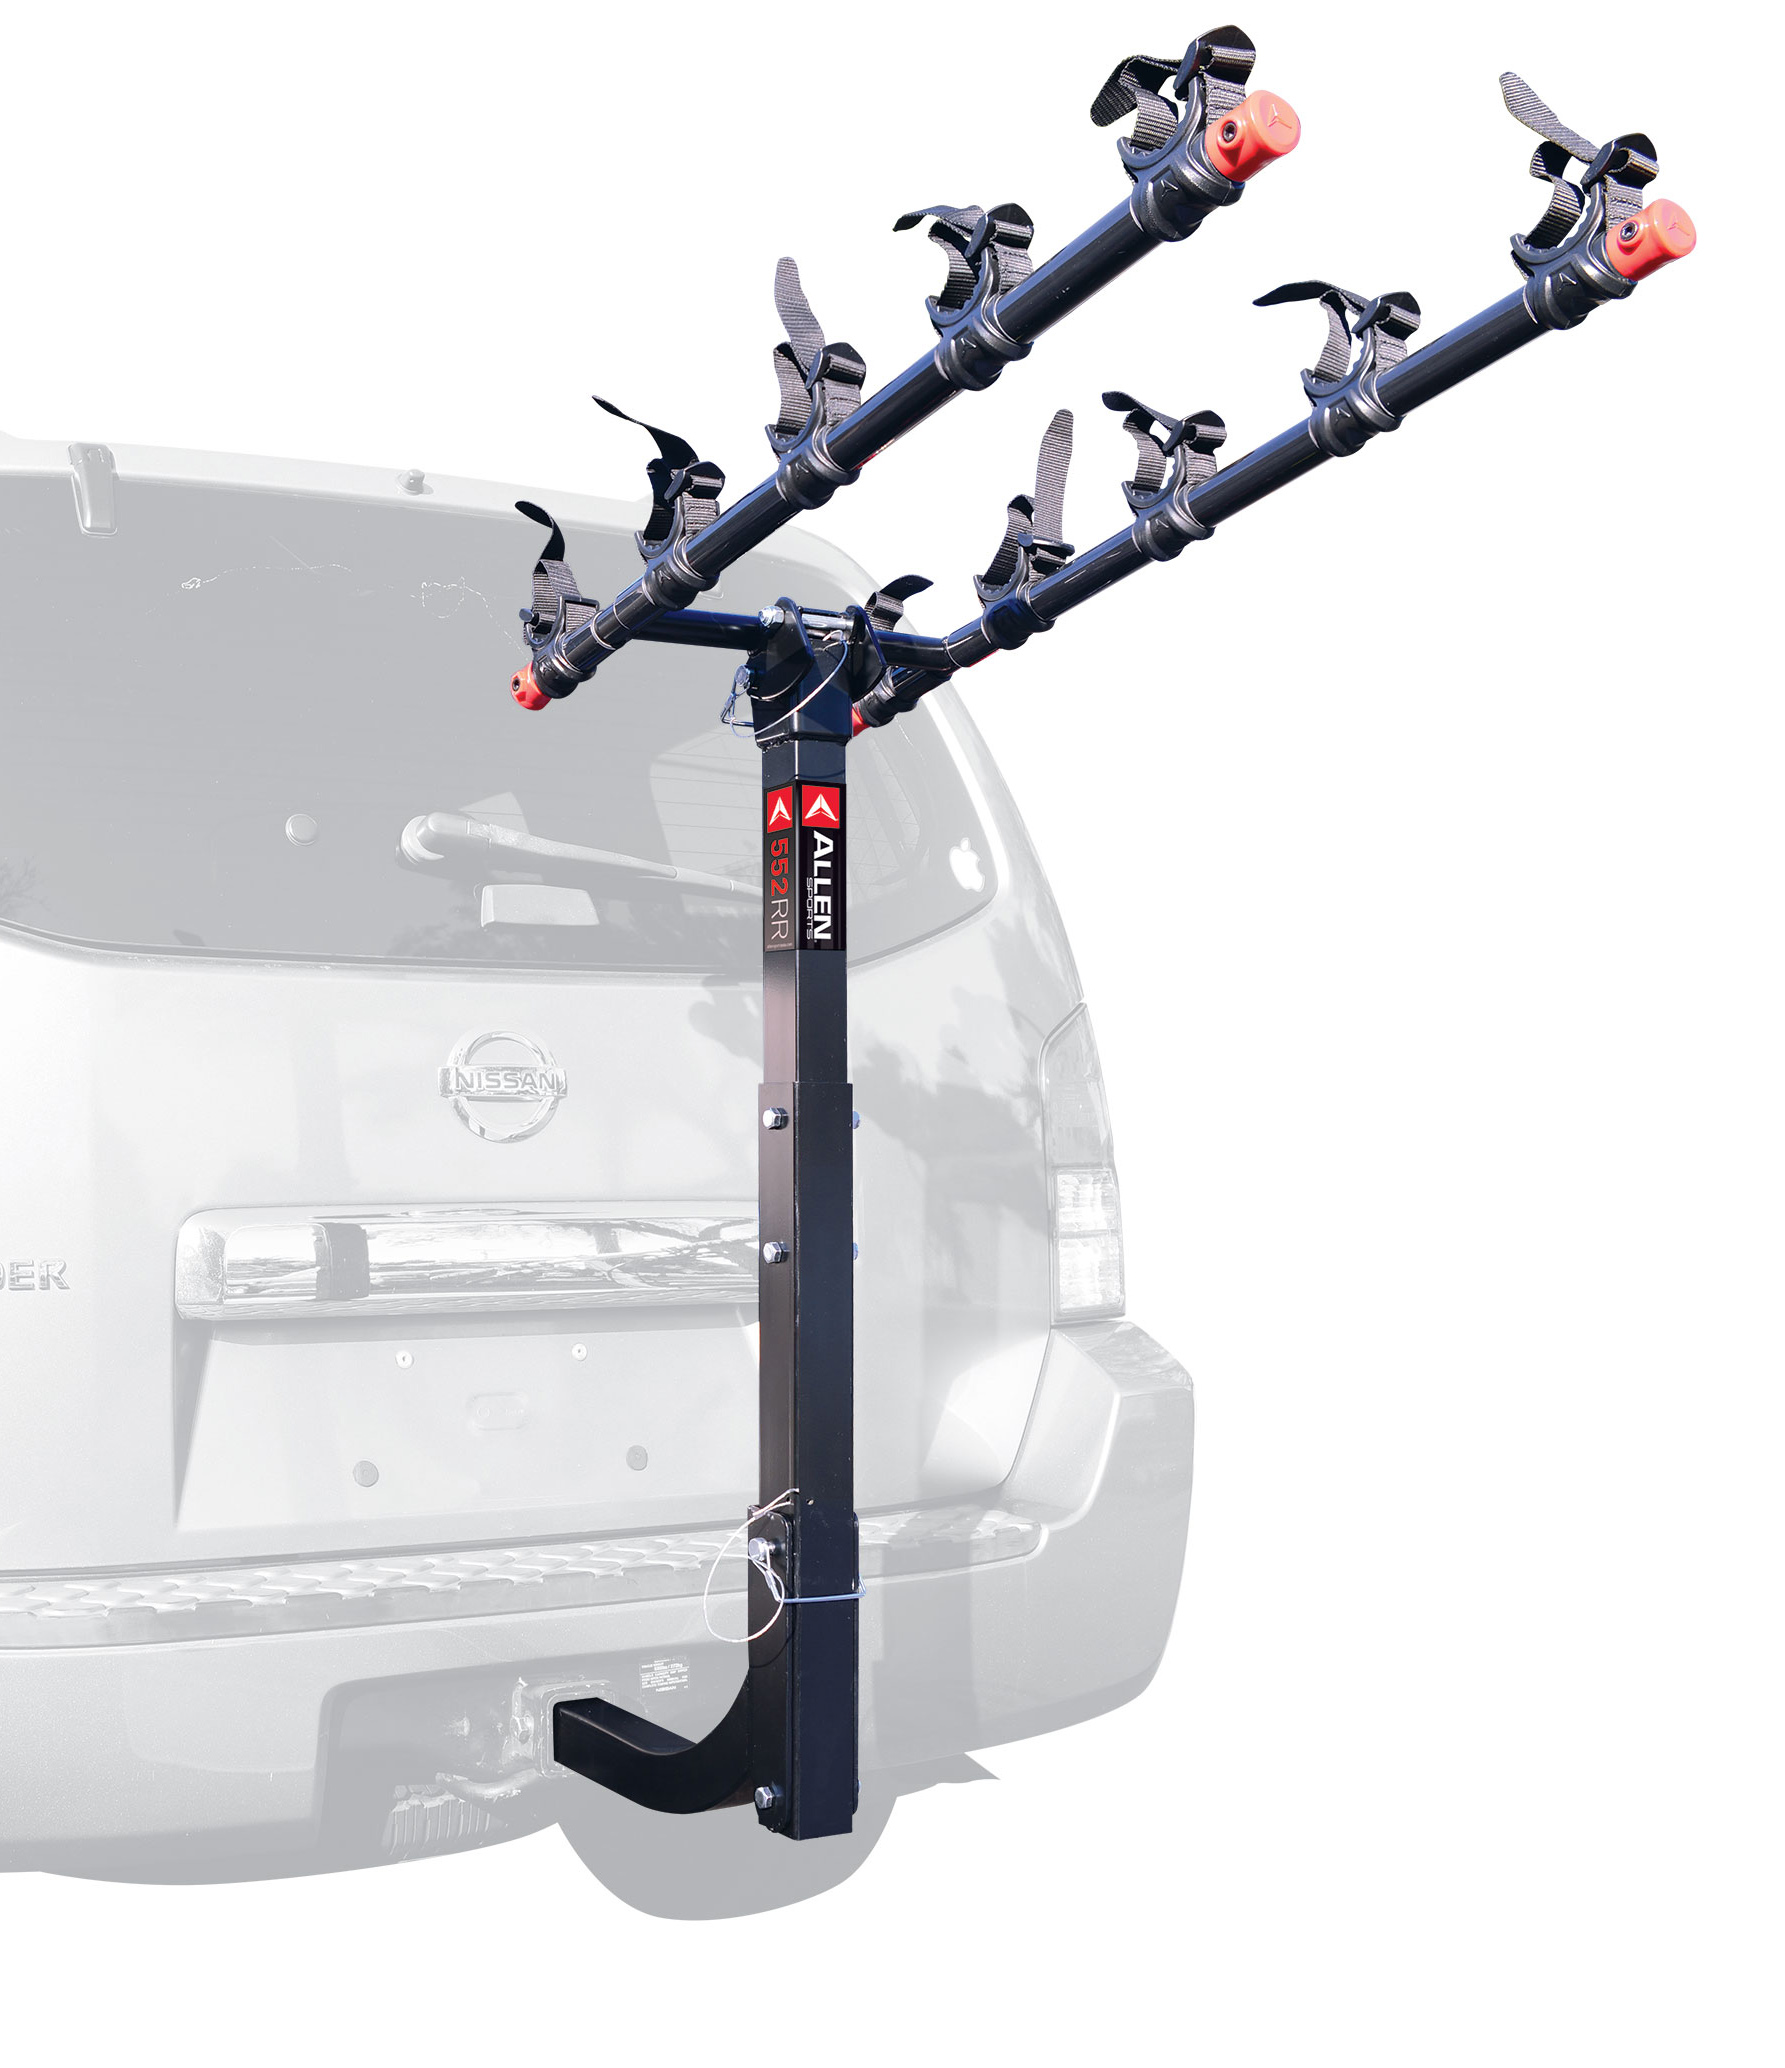 Allen Sports 552RR Deluxe 5-Bike Hitch Mounted Bike Rack by THE R A ALLEN COMPANY INC